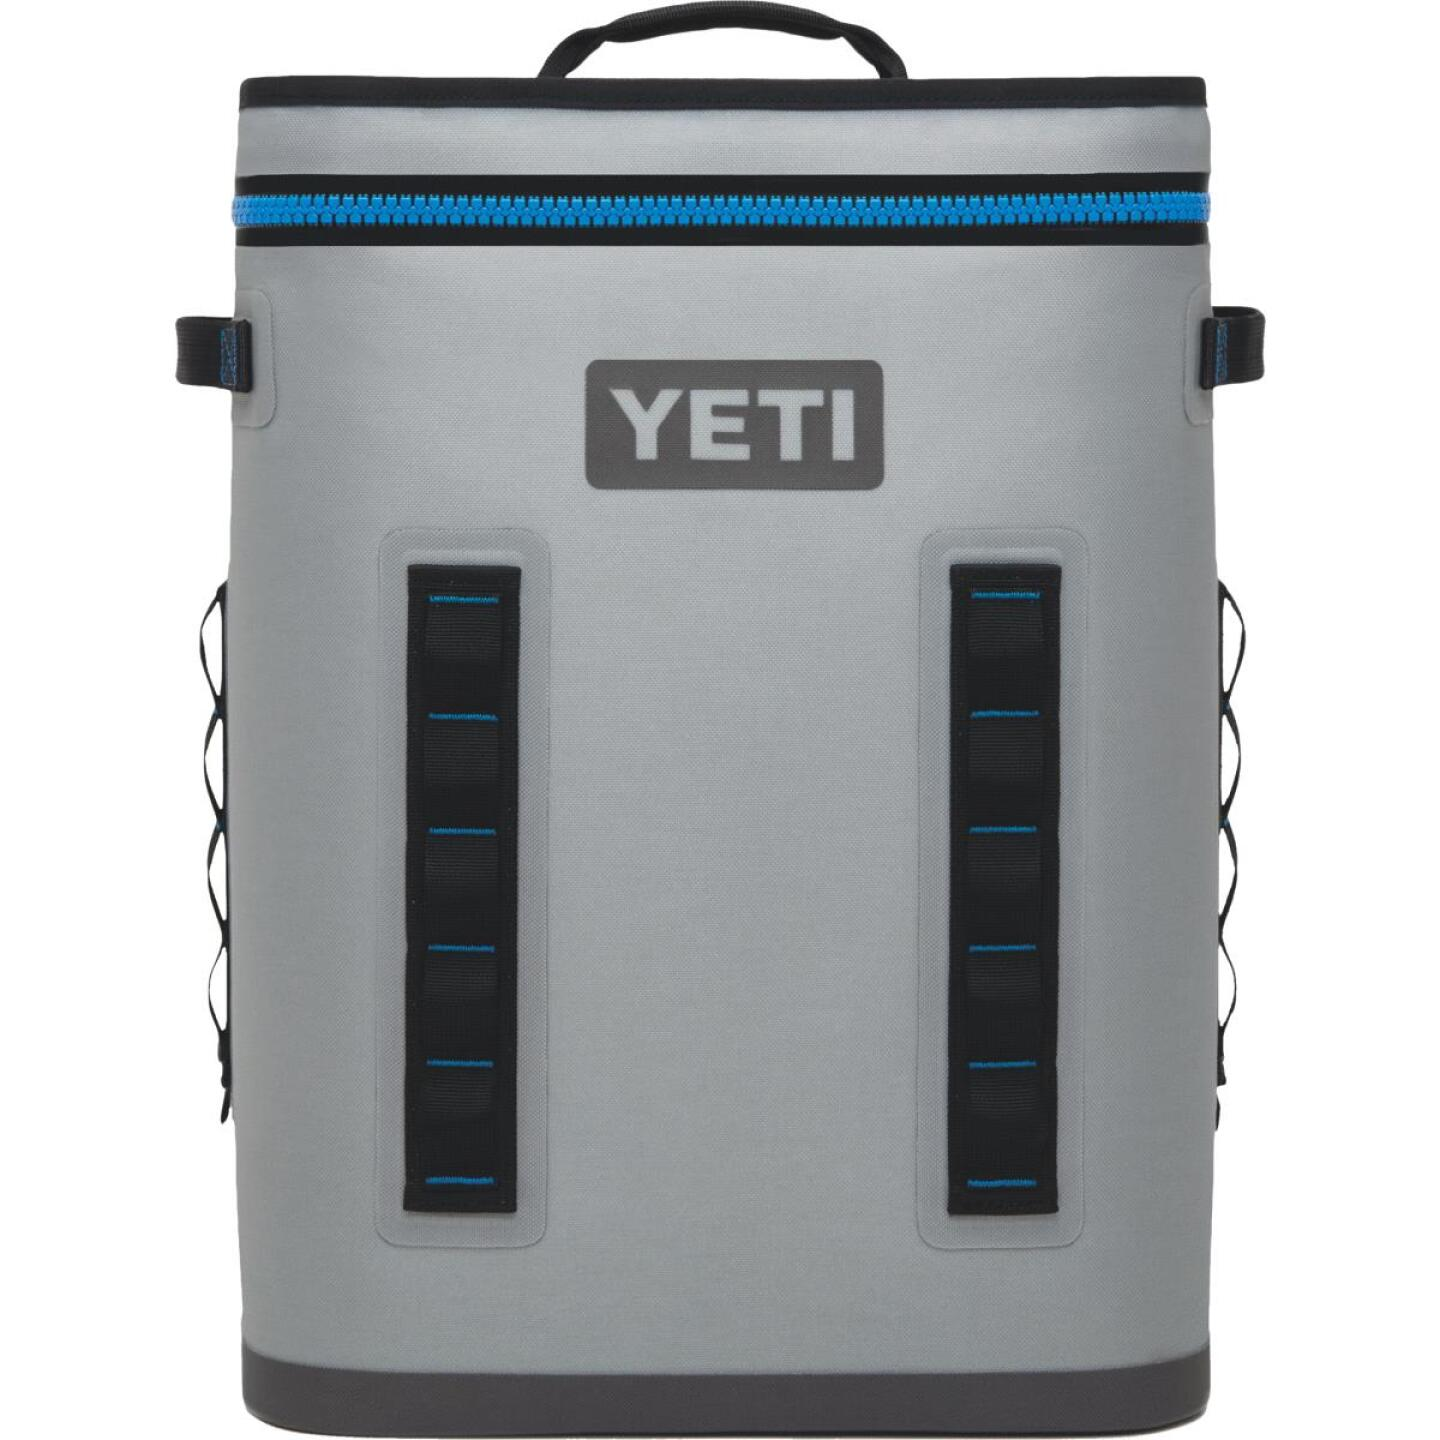 Yeti Hopper BackFlip 24 20-Can Soft-Side Cooler, Gray Image 1